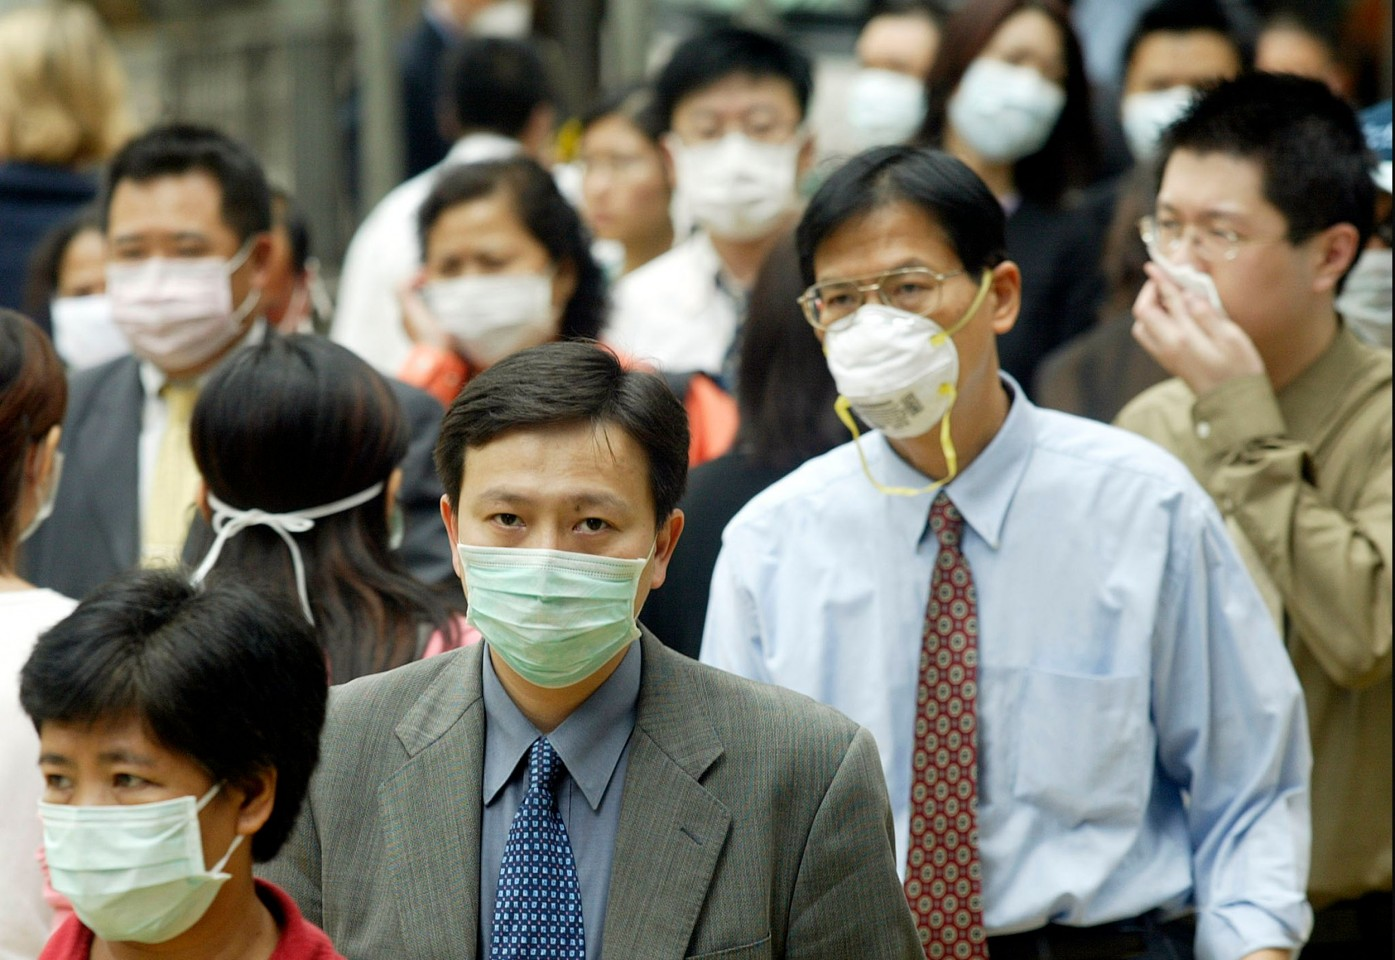 This file photo taken on 31 March 2003 shows pedestrians wearing masks on the street to protect against the SARS virus in Hong Kong. (Peter Parks/AFP)